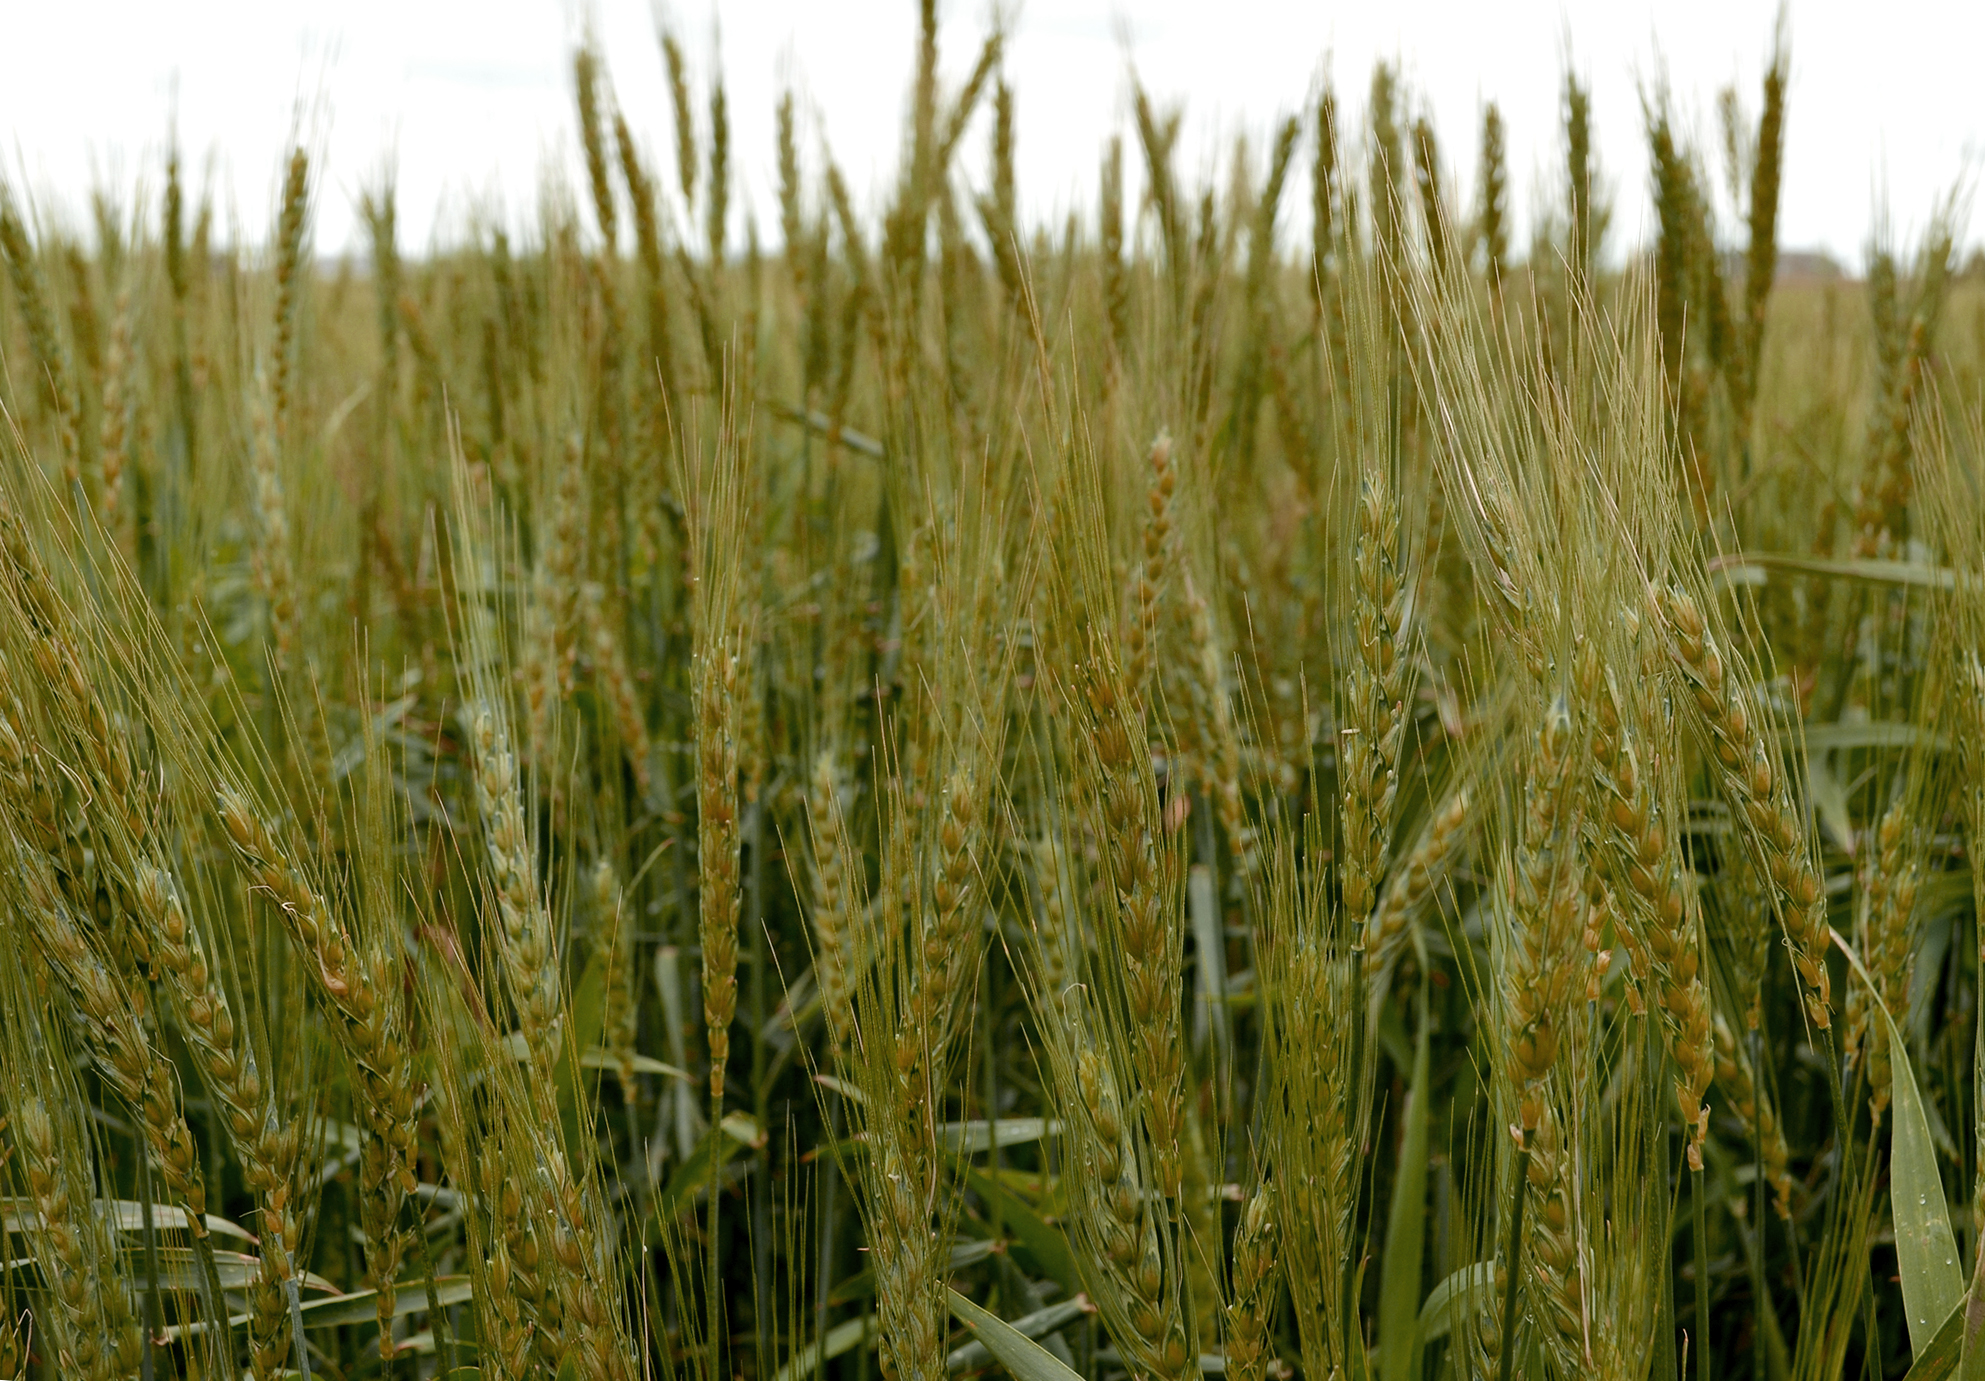 What Are The Different Types Of Wheat?